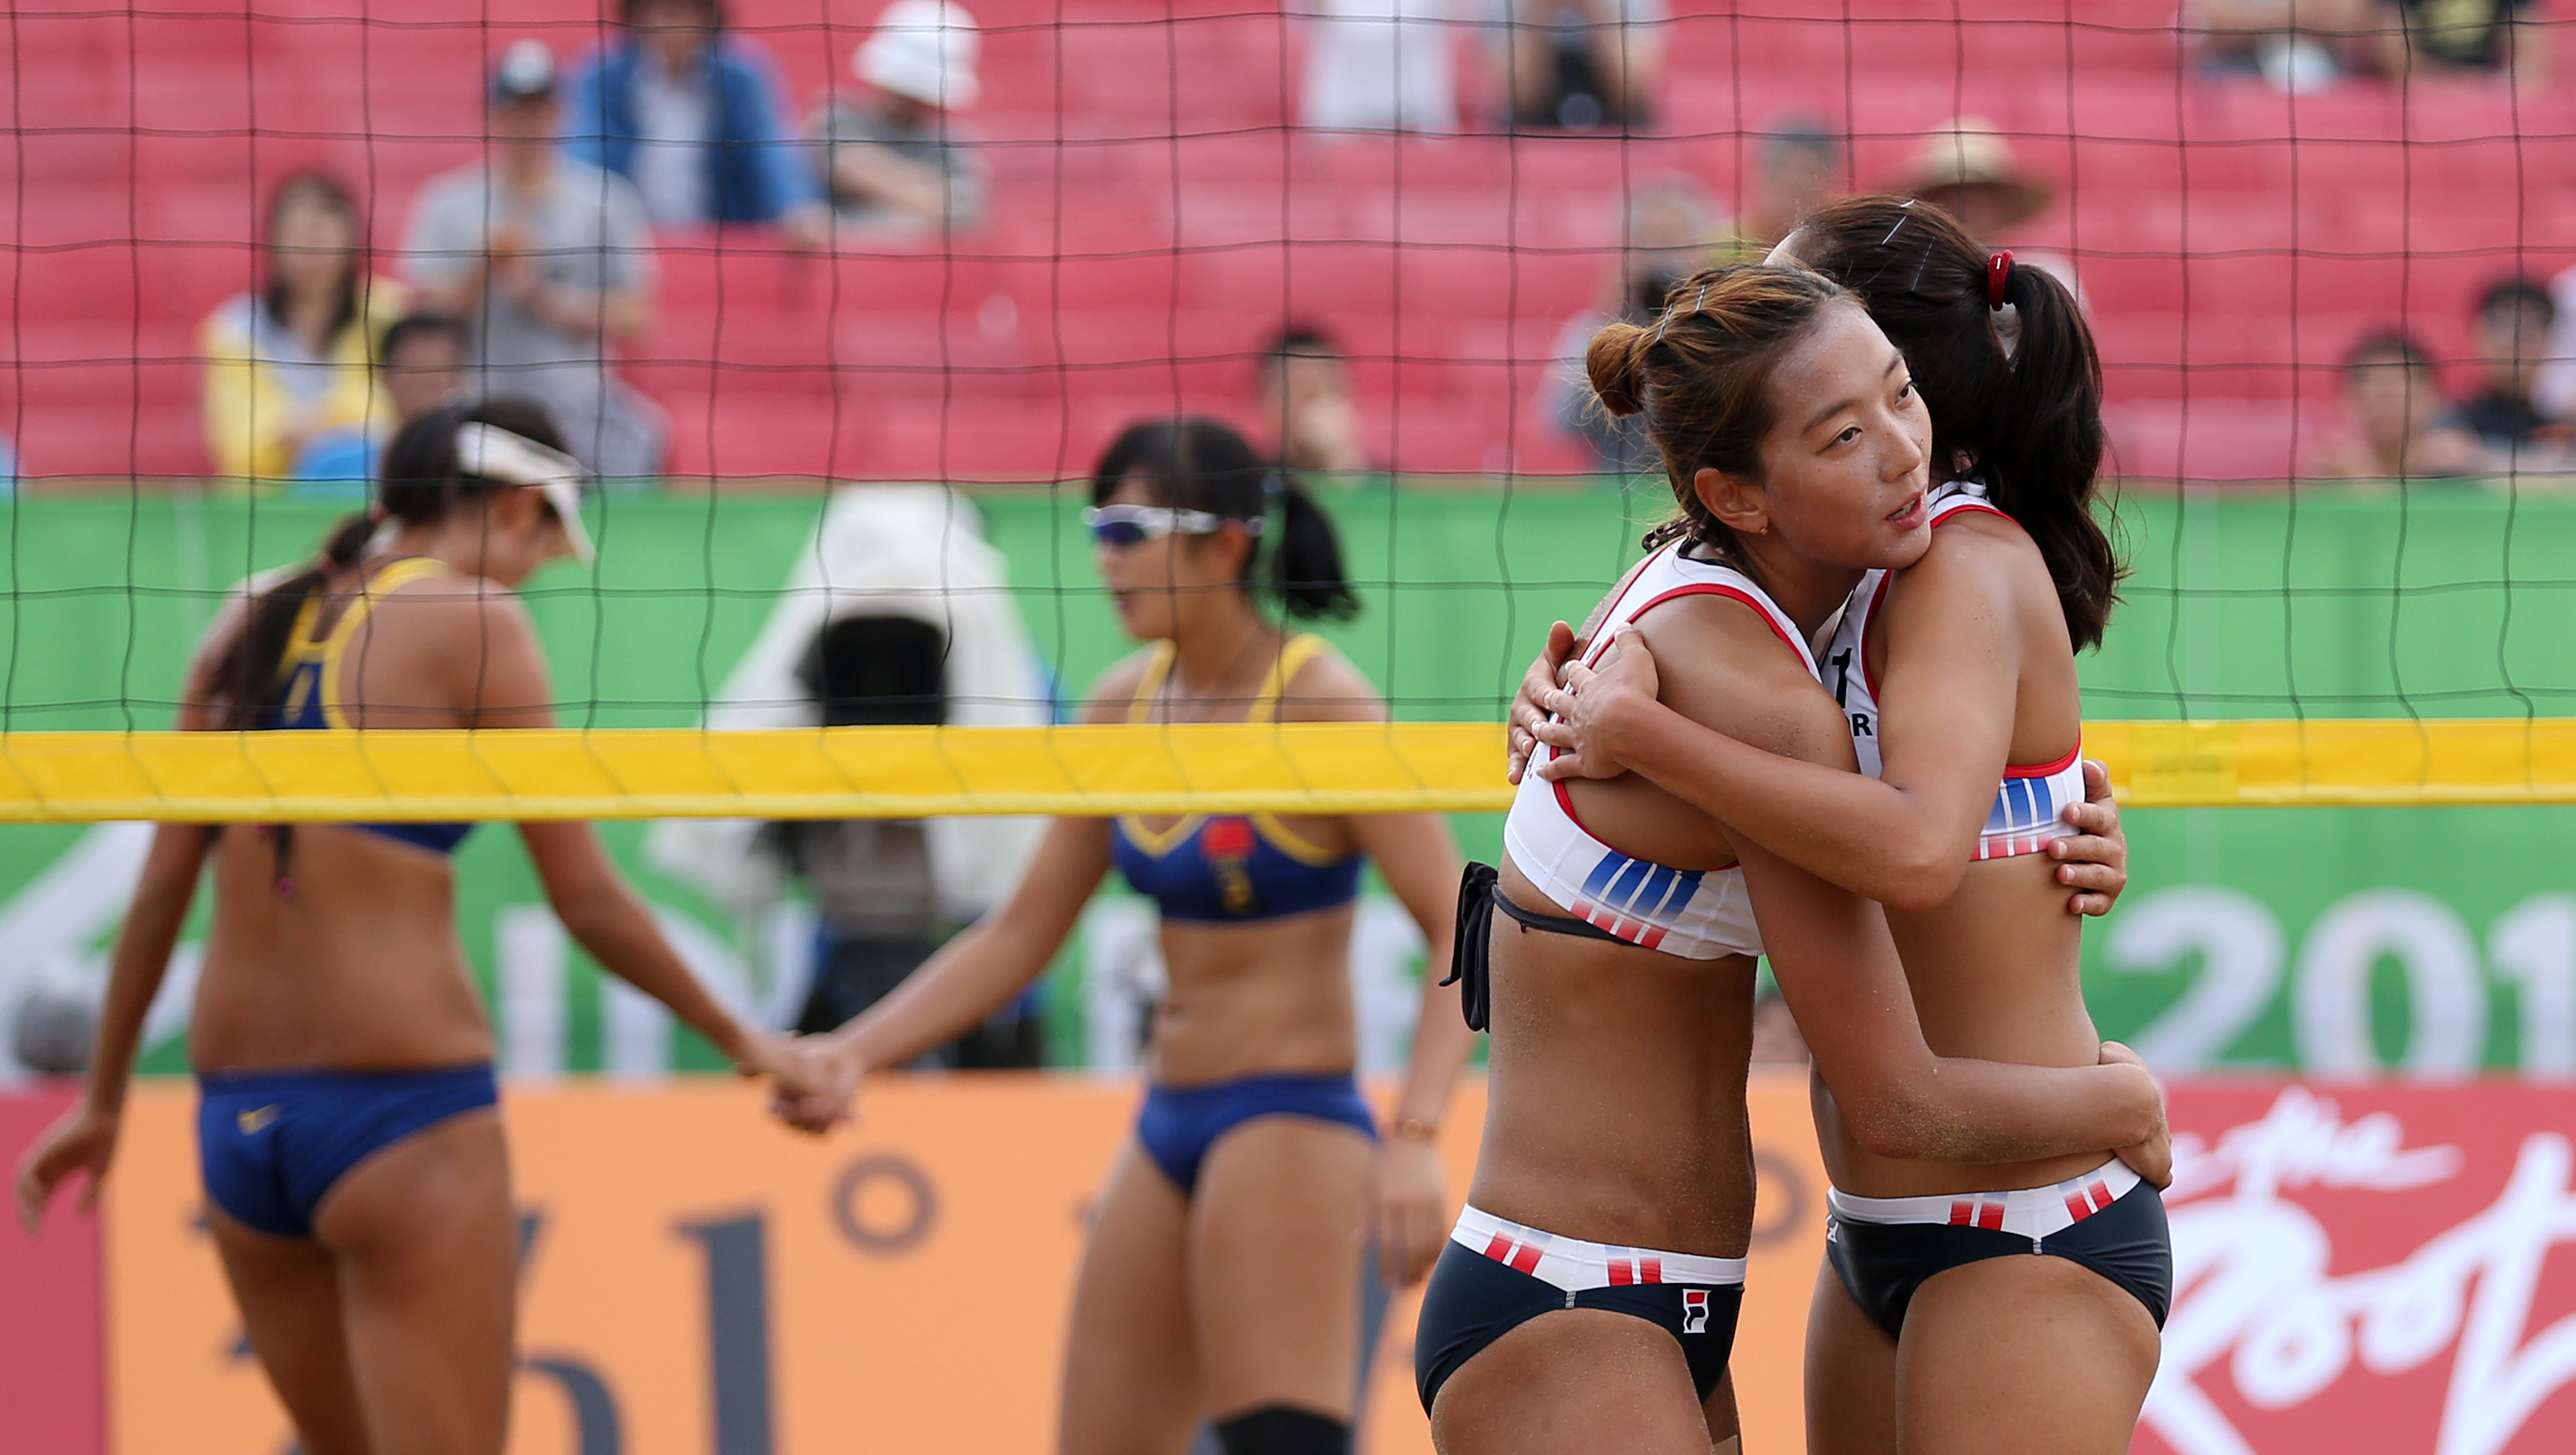 Volleyball nude girls anal beach